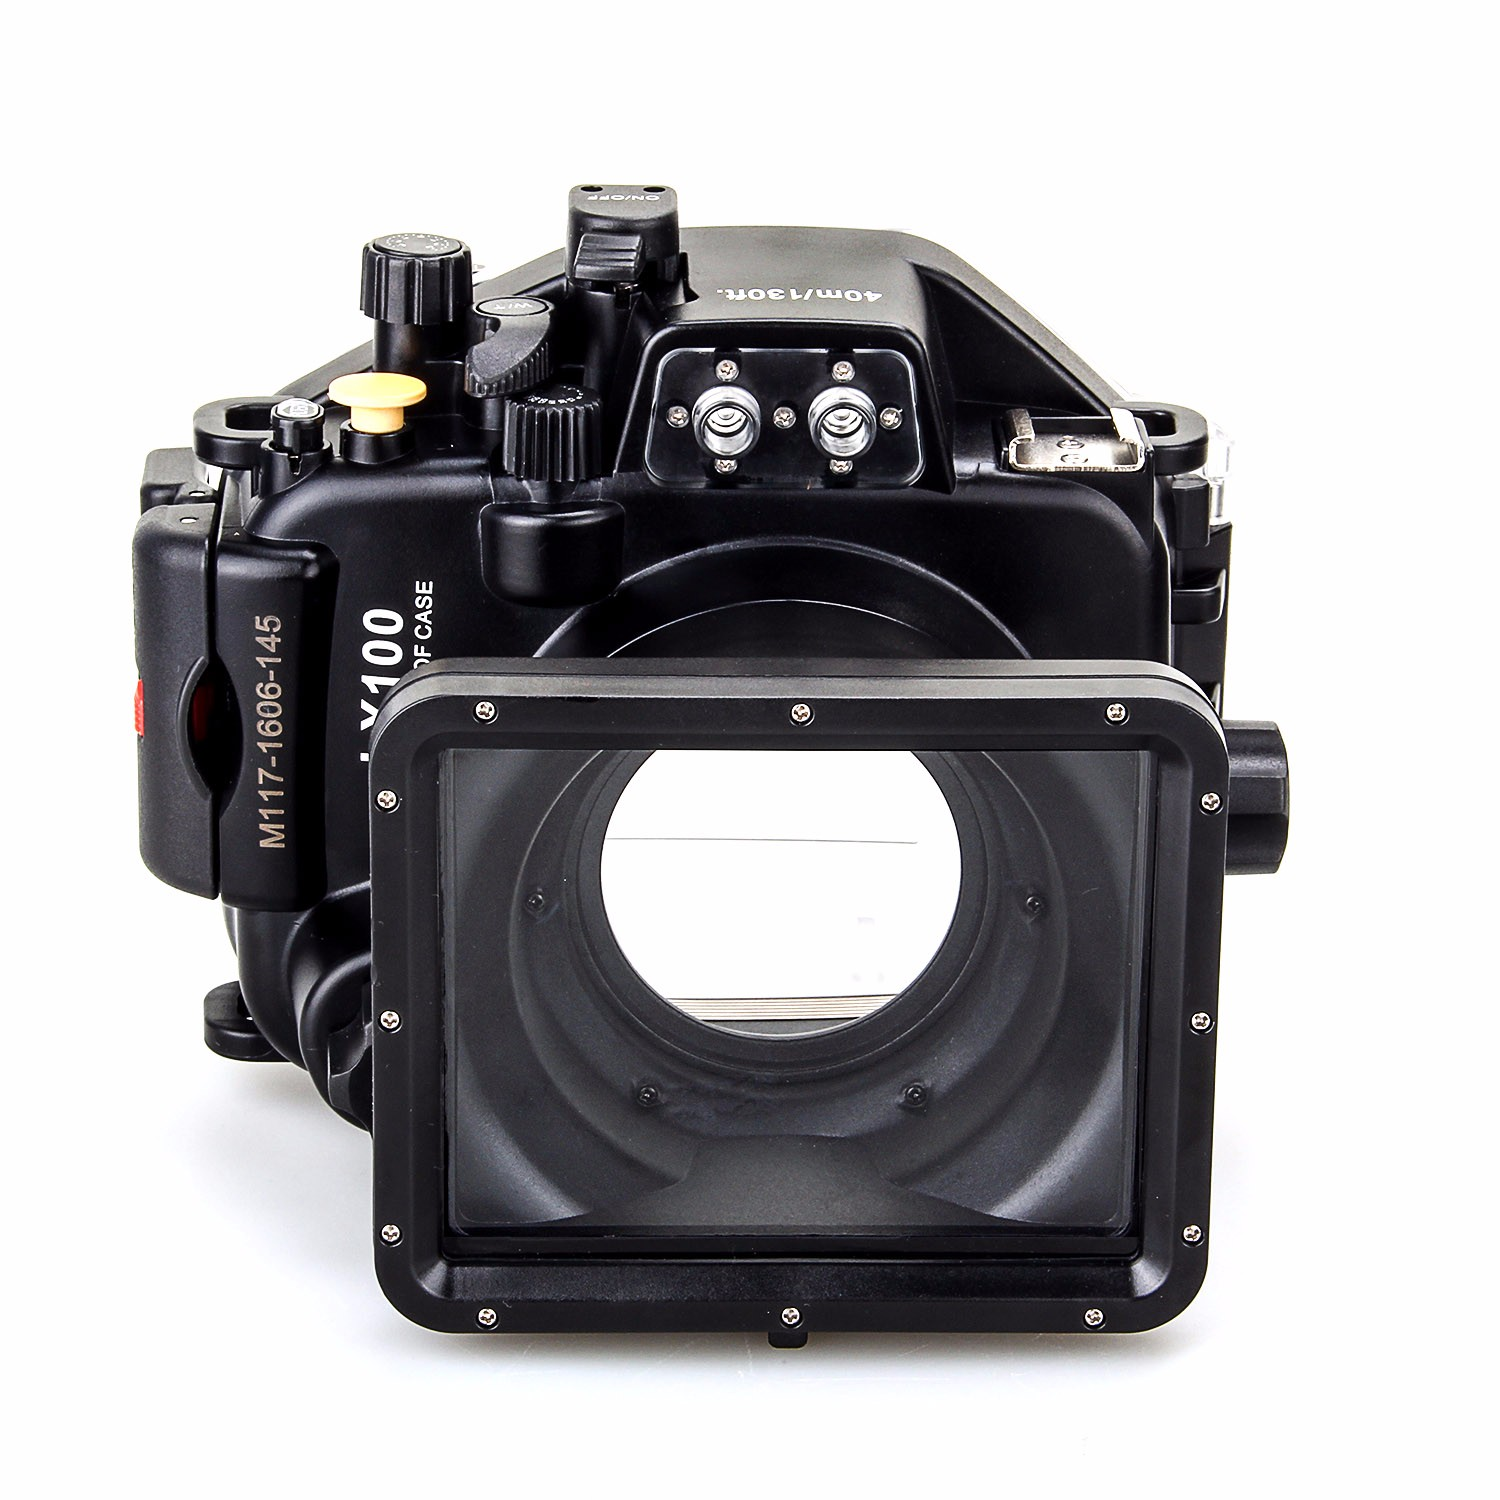 40M/130ft Underwater Housing for Panasonic Lumix LX100 with 27-75mm Lens картридж lx100 k 60 2 black